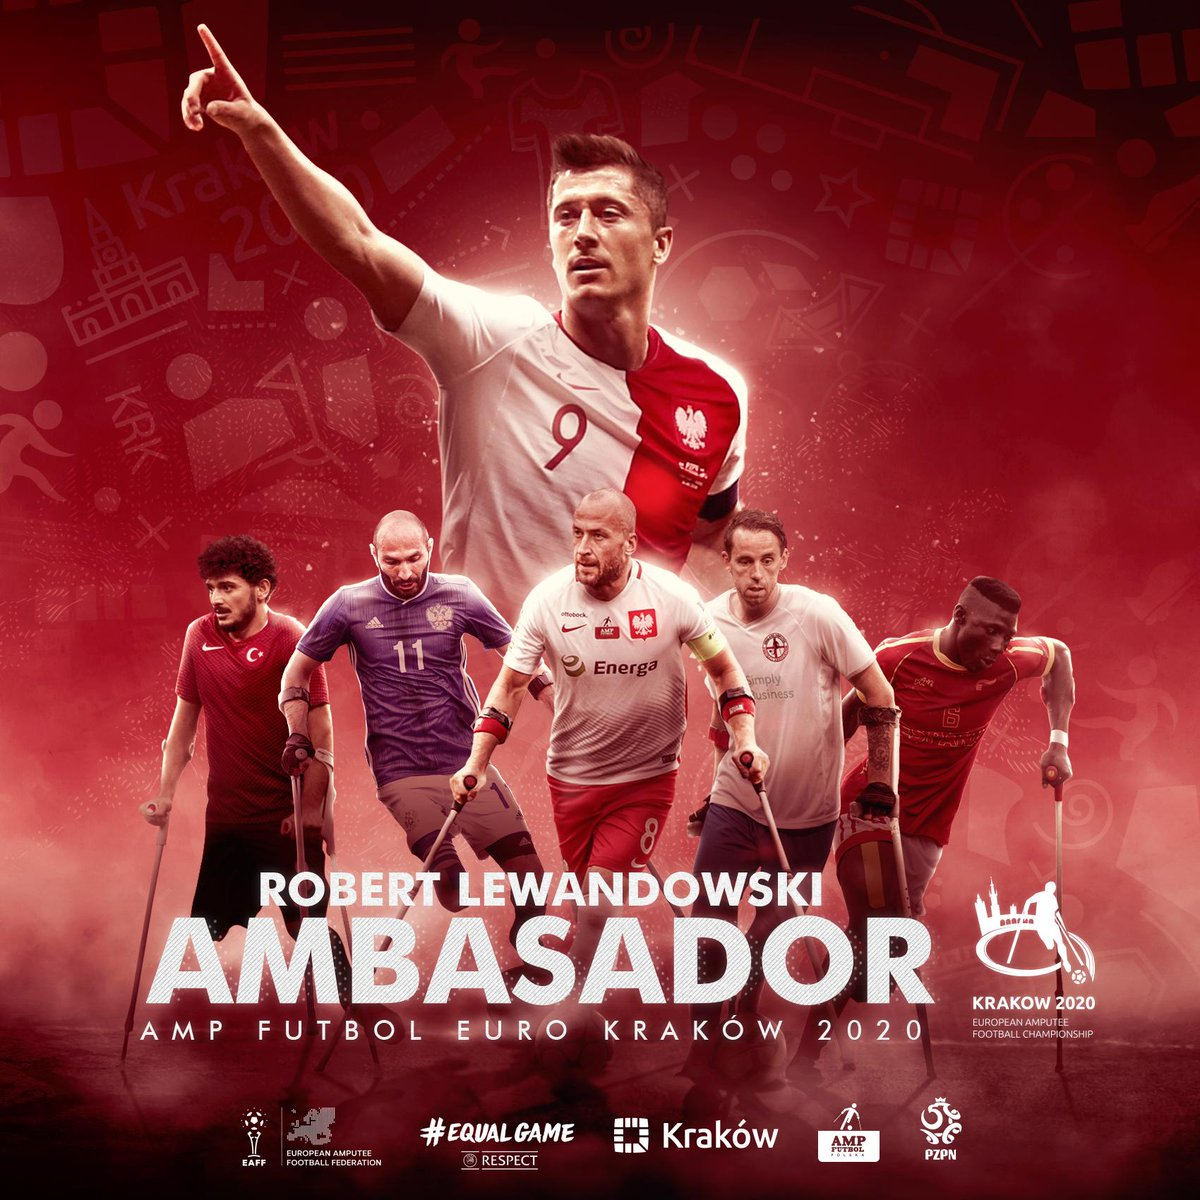 I am very proud to announce that I am the ambassador of the European Amputee Football Championship, which will take place in September 2020 in #Kraków #Poland ⚽🏆 @AmpFutbolPolska #AMPFutbol #AmpEURO2020 #EqualGame #Respect